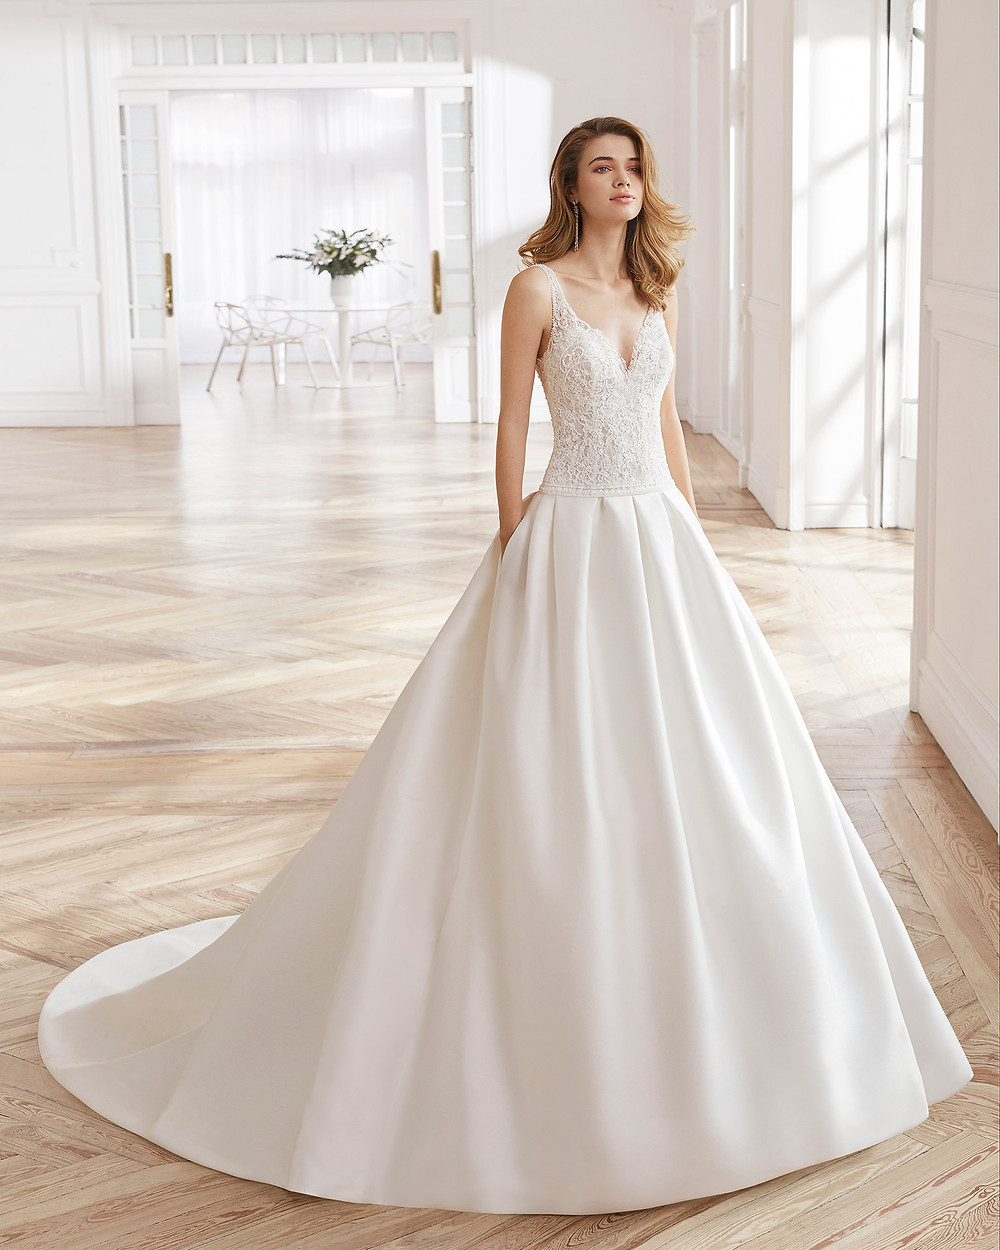 An Aire Barcelona 2020 silk and lace low waist ball gown wedding dress with pockets and a v neckline